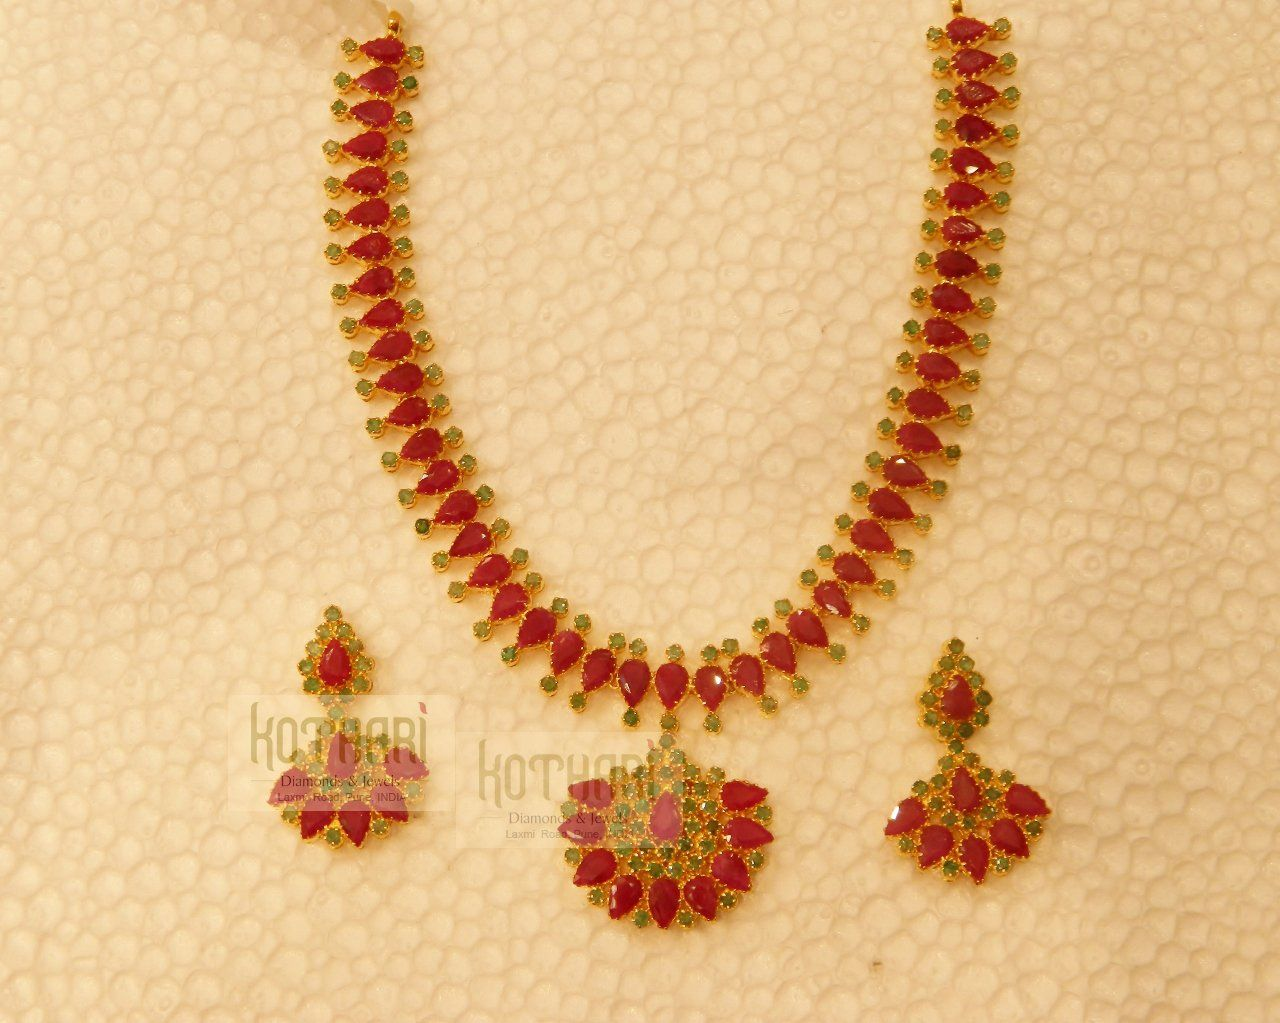 Necklaces harams gold jewellery necklaces harams nk